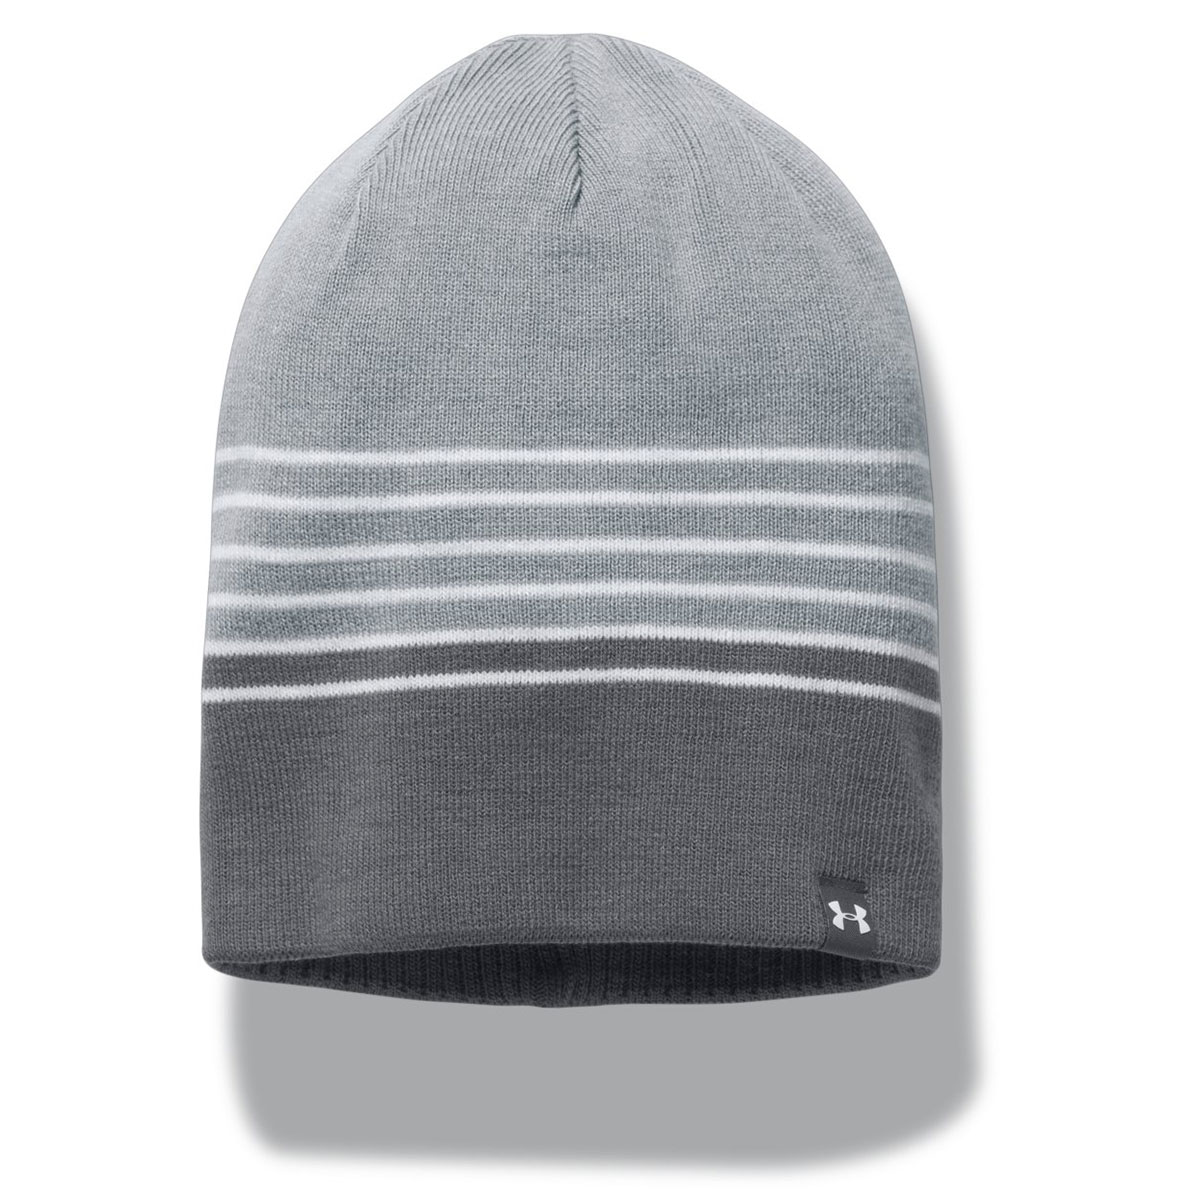 9138d48a233 Under Armour ColdGear 4 in 1 Reversible 2.0 Beanie Mens Winter Golf ...